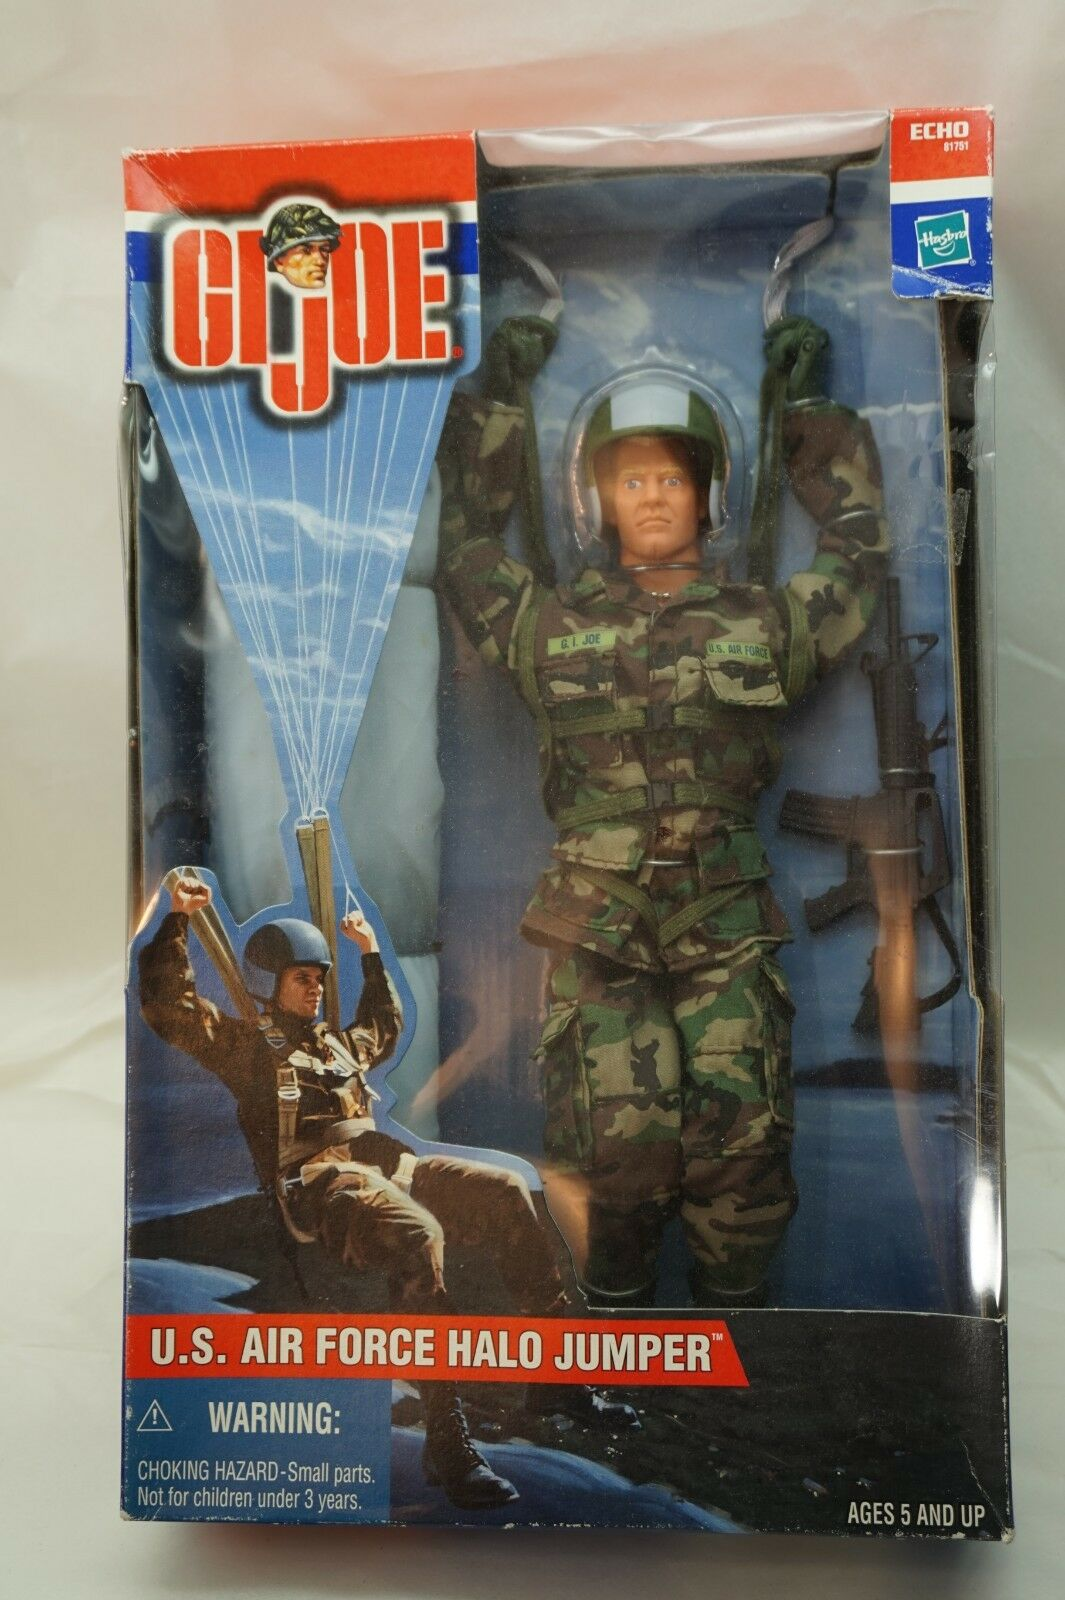 GI JOE ACTION FIGURE 12in US AIR FORCE HALO JUMPER 2001 MIB FACTORY SEALED d